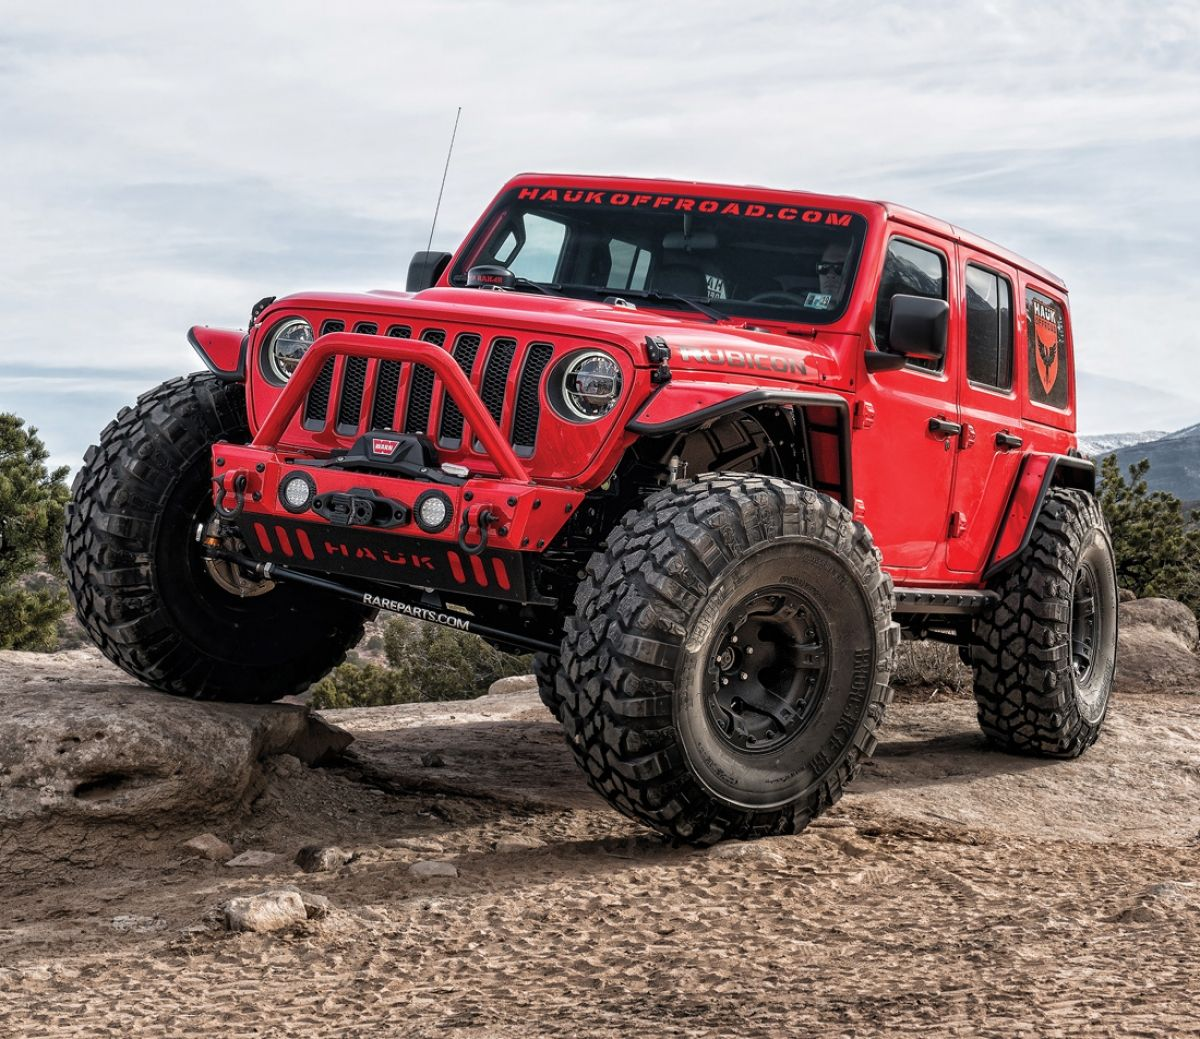 Overhauled 2018 Jeep Wrangler Jl Rubicon Would You Change Anything About It Jeep Wrangler Jeep Wrangler Jeep Jl Red Jeep Wrangler Unlimited